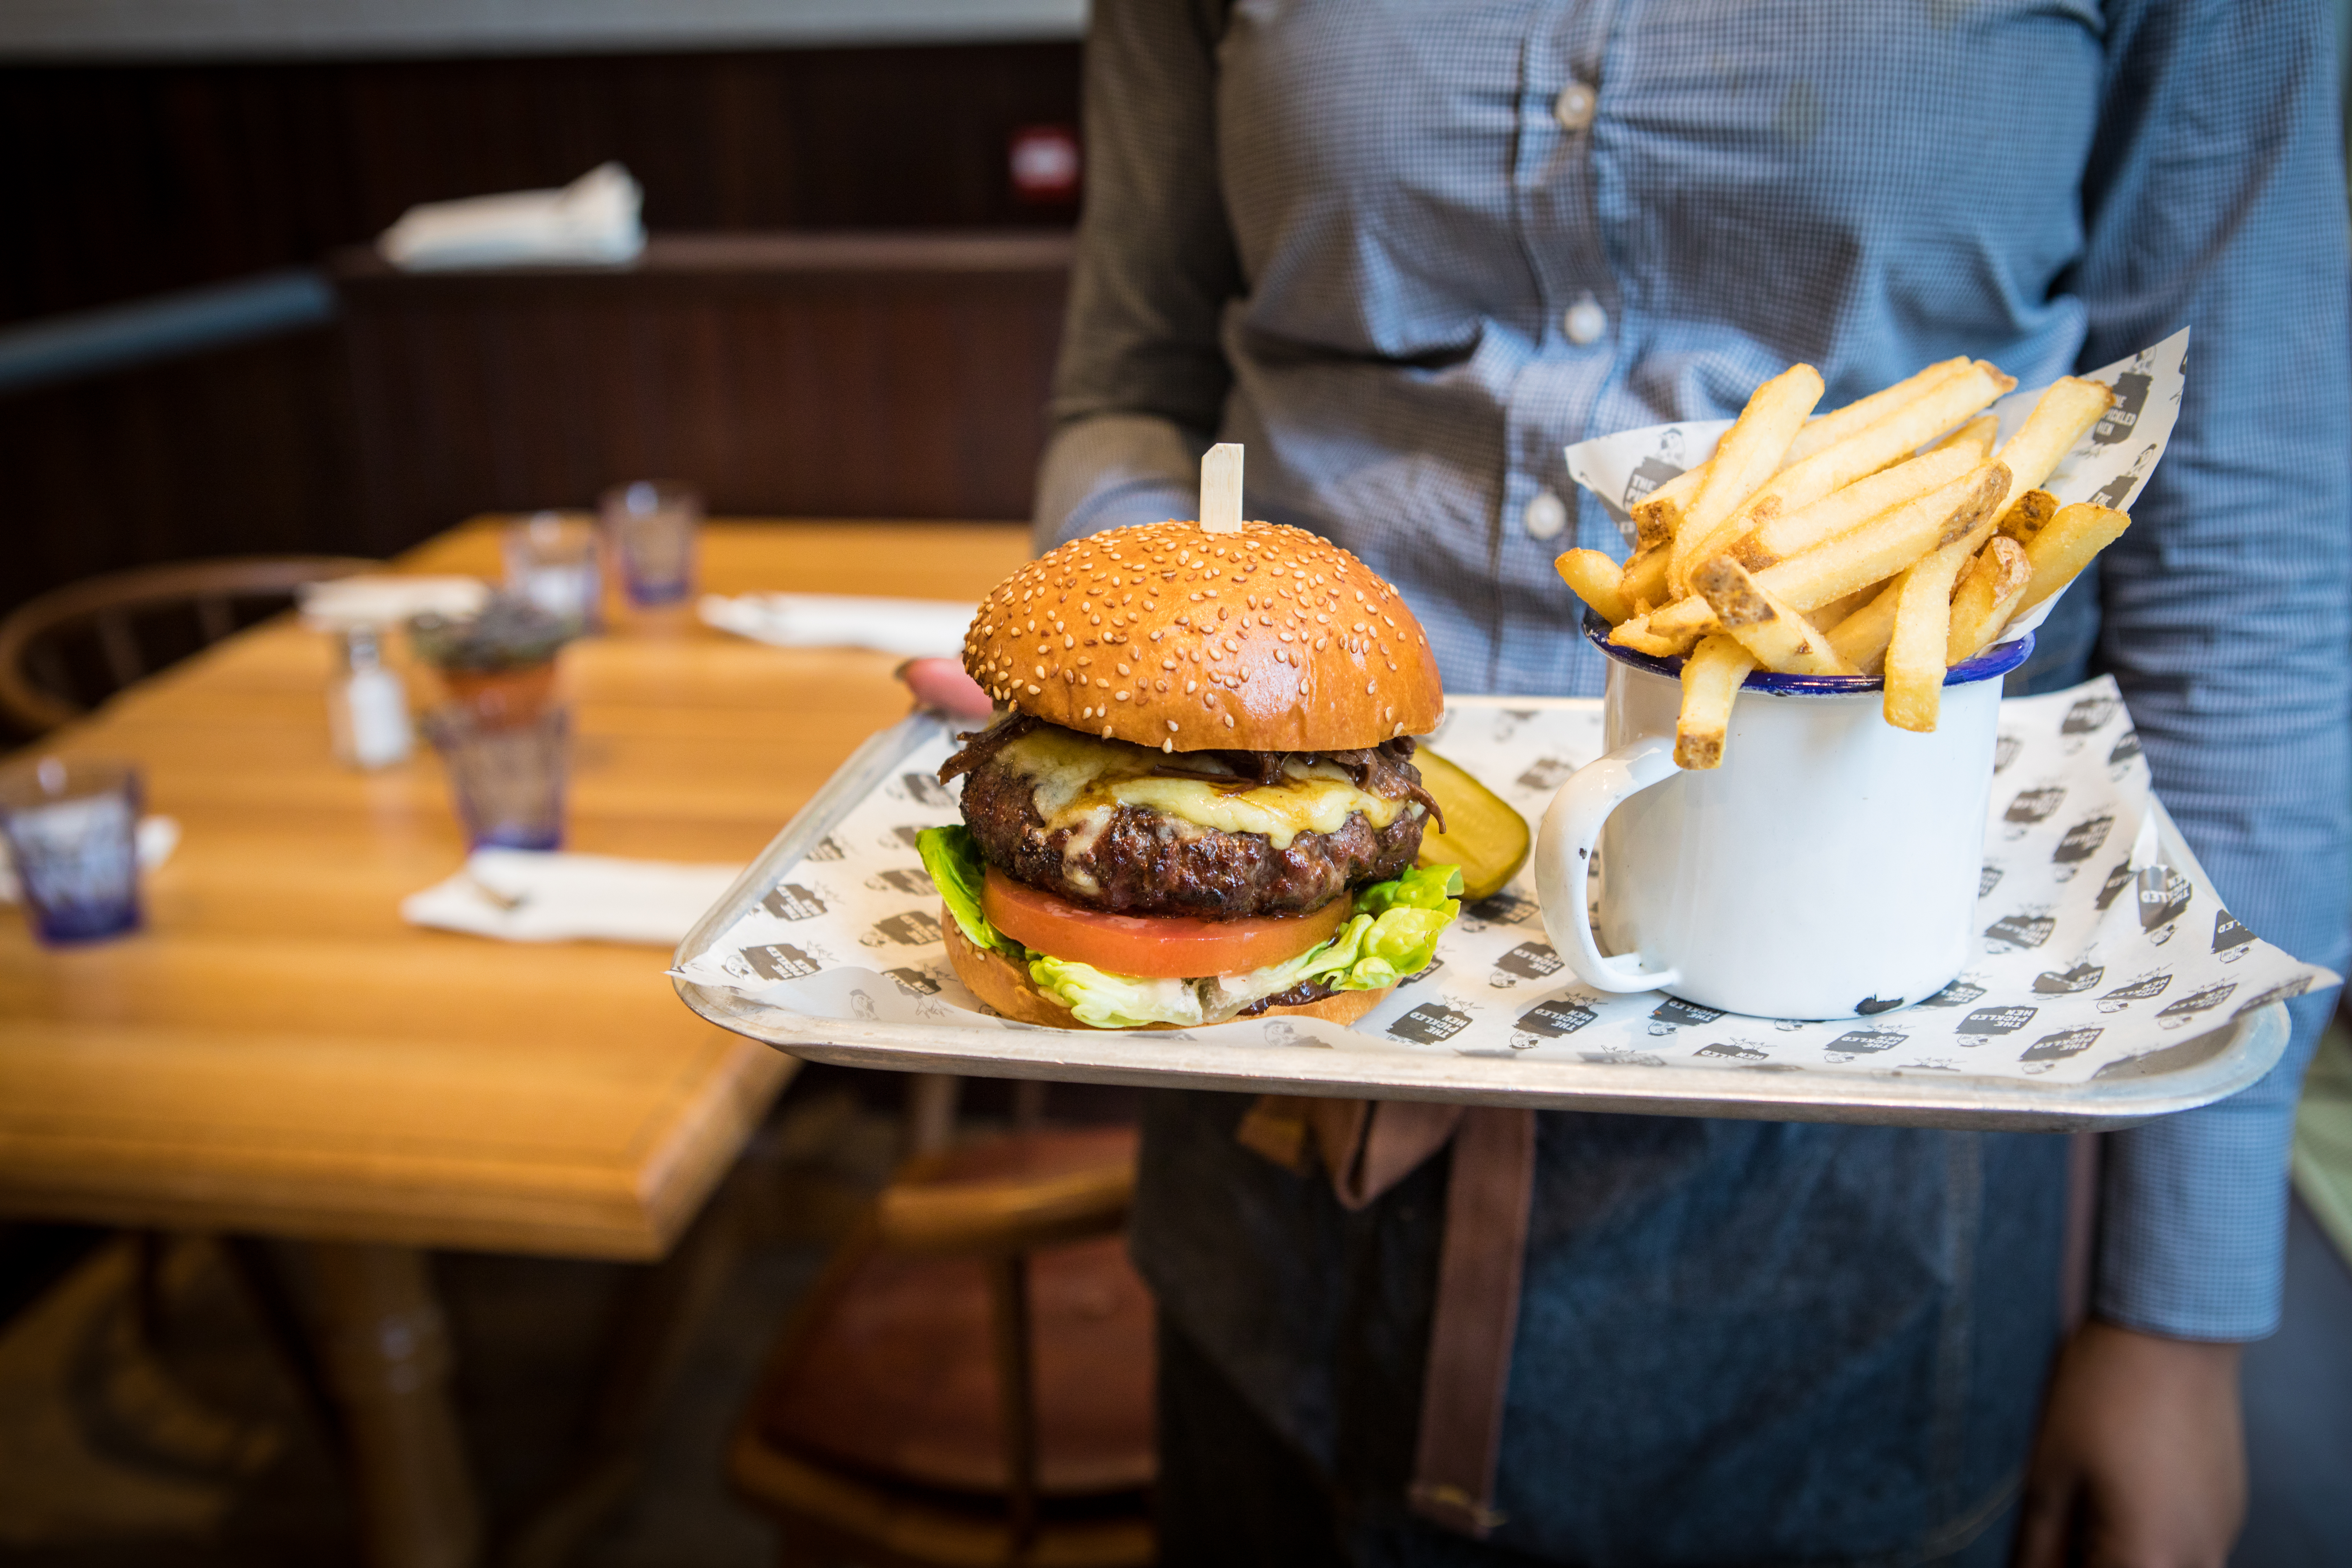 Thursday Burger Night at The Pickled Hen